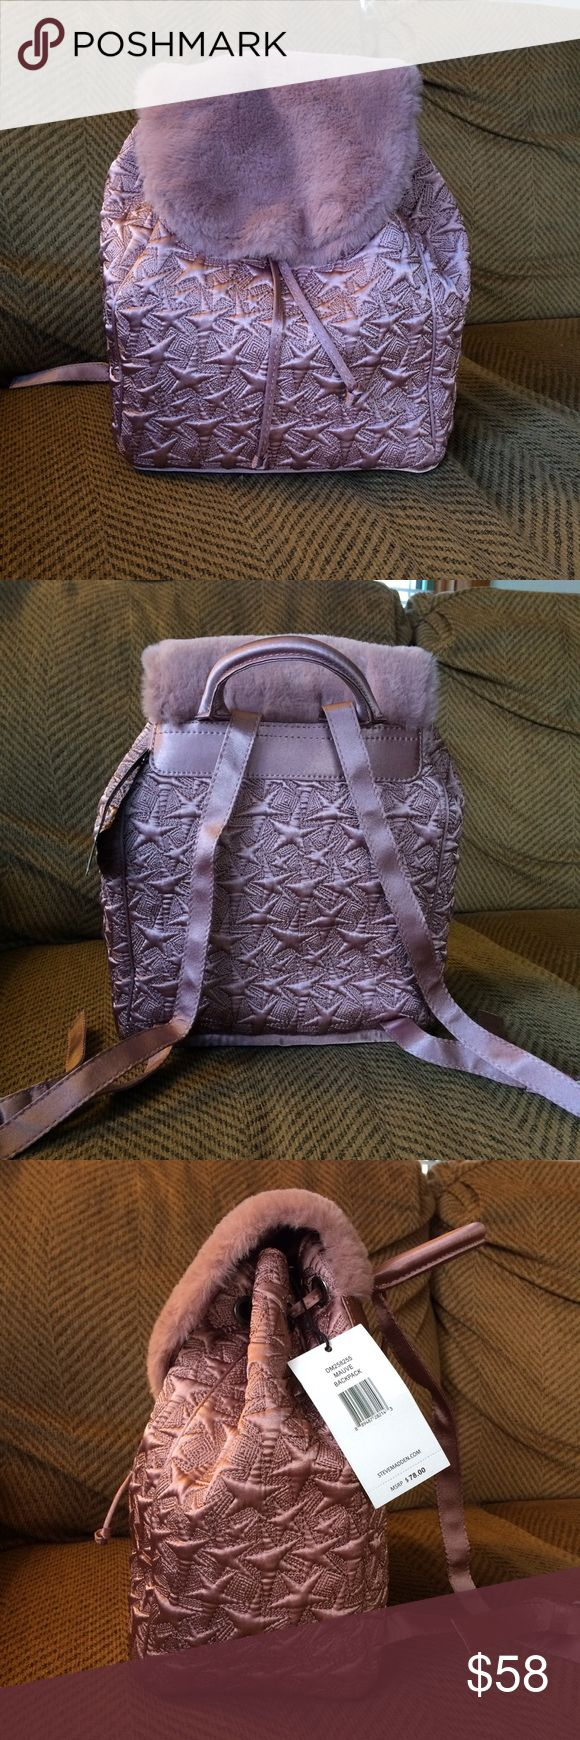 Mauve Mixed Fabric Steve Madden Backpack NWT. No obvious tears or knicks. Nice interior pattern. Super soft as well. OBO Steve Madden Bags Backpacks